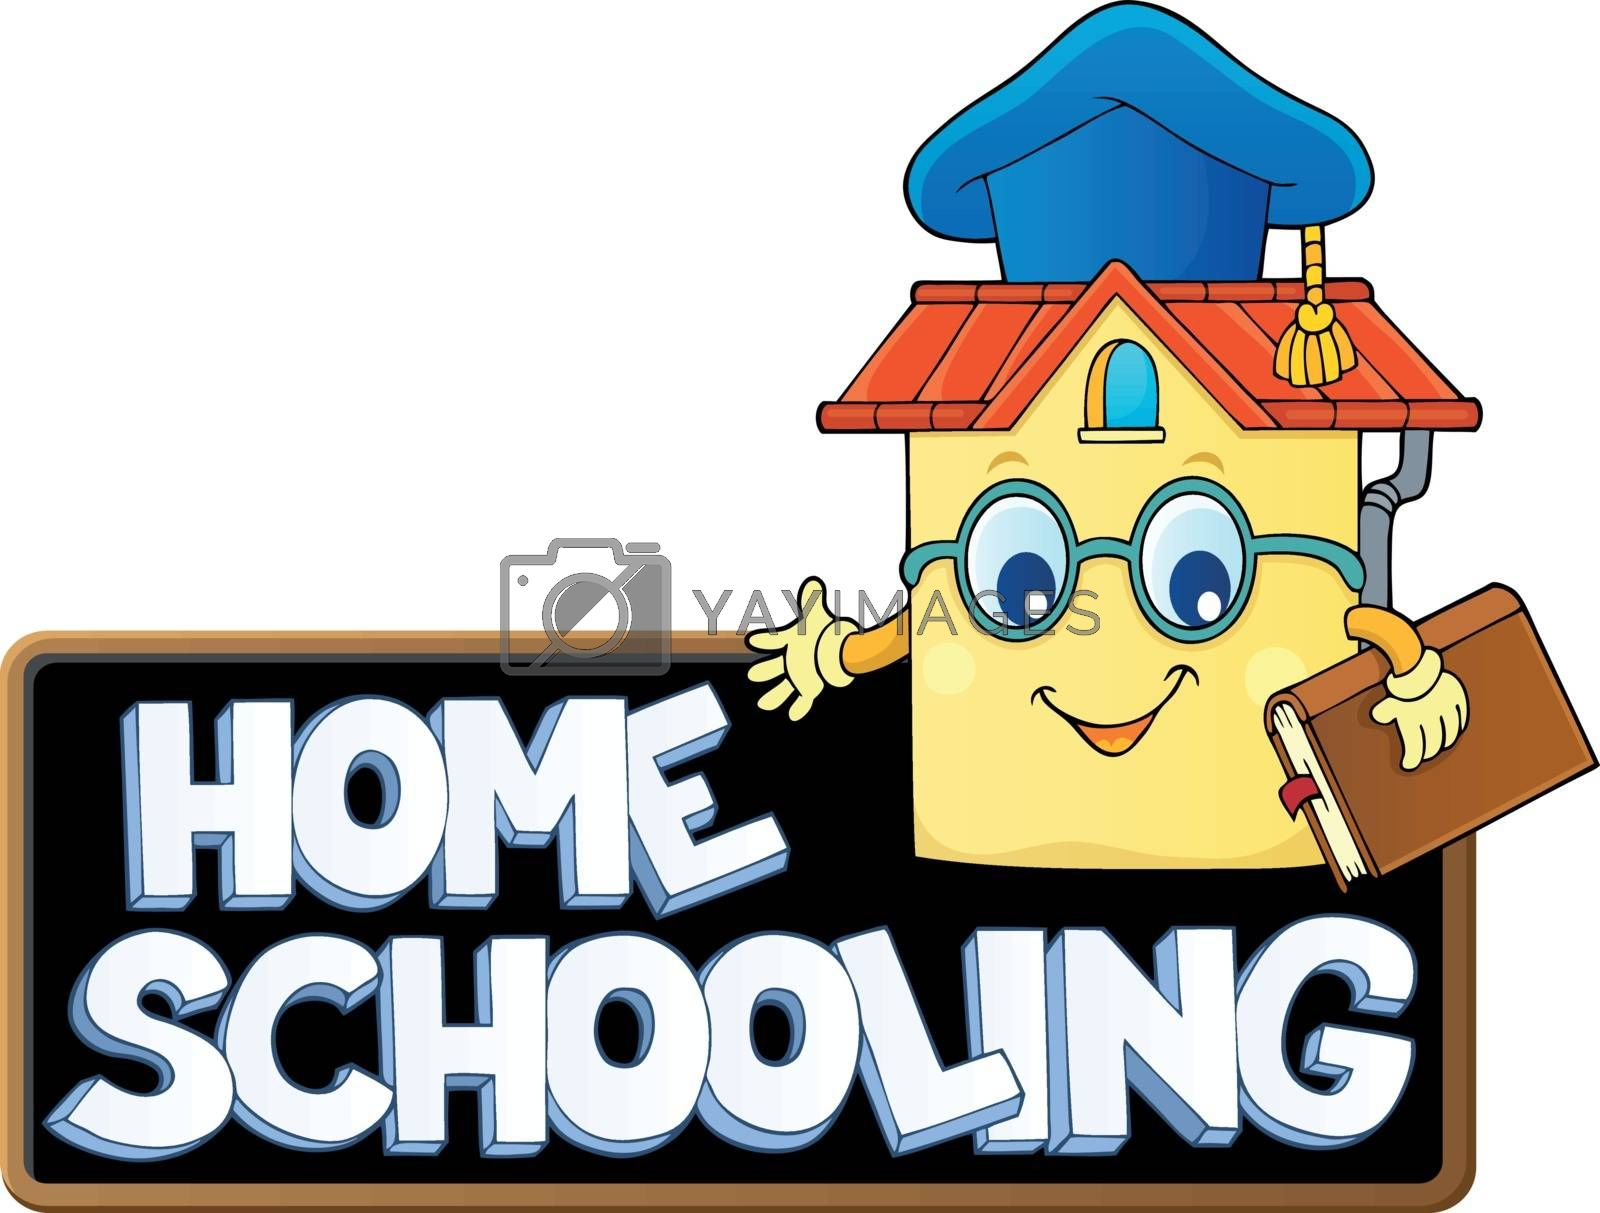 Home schooling theme sign 7 - eps10 vector illustration.